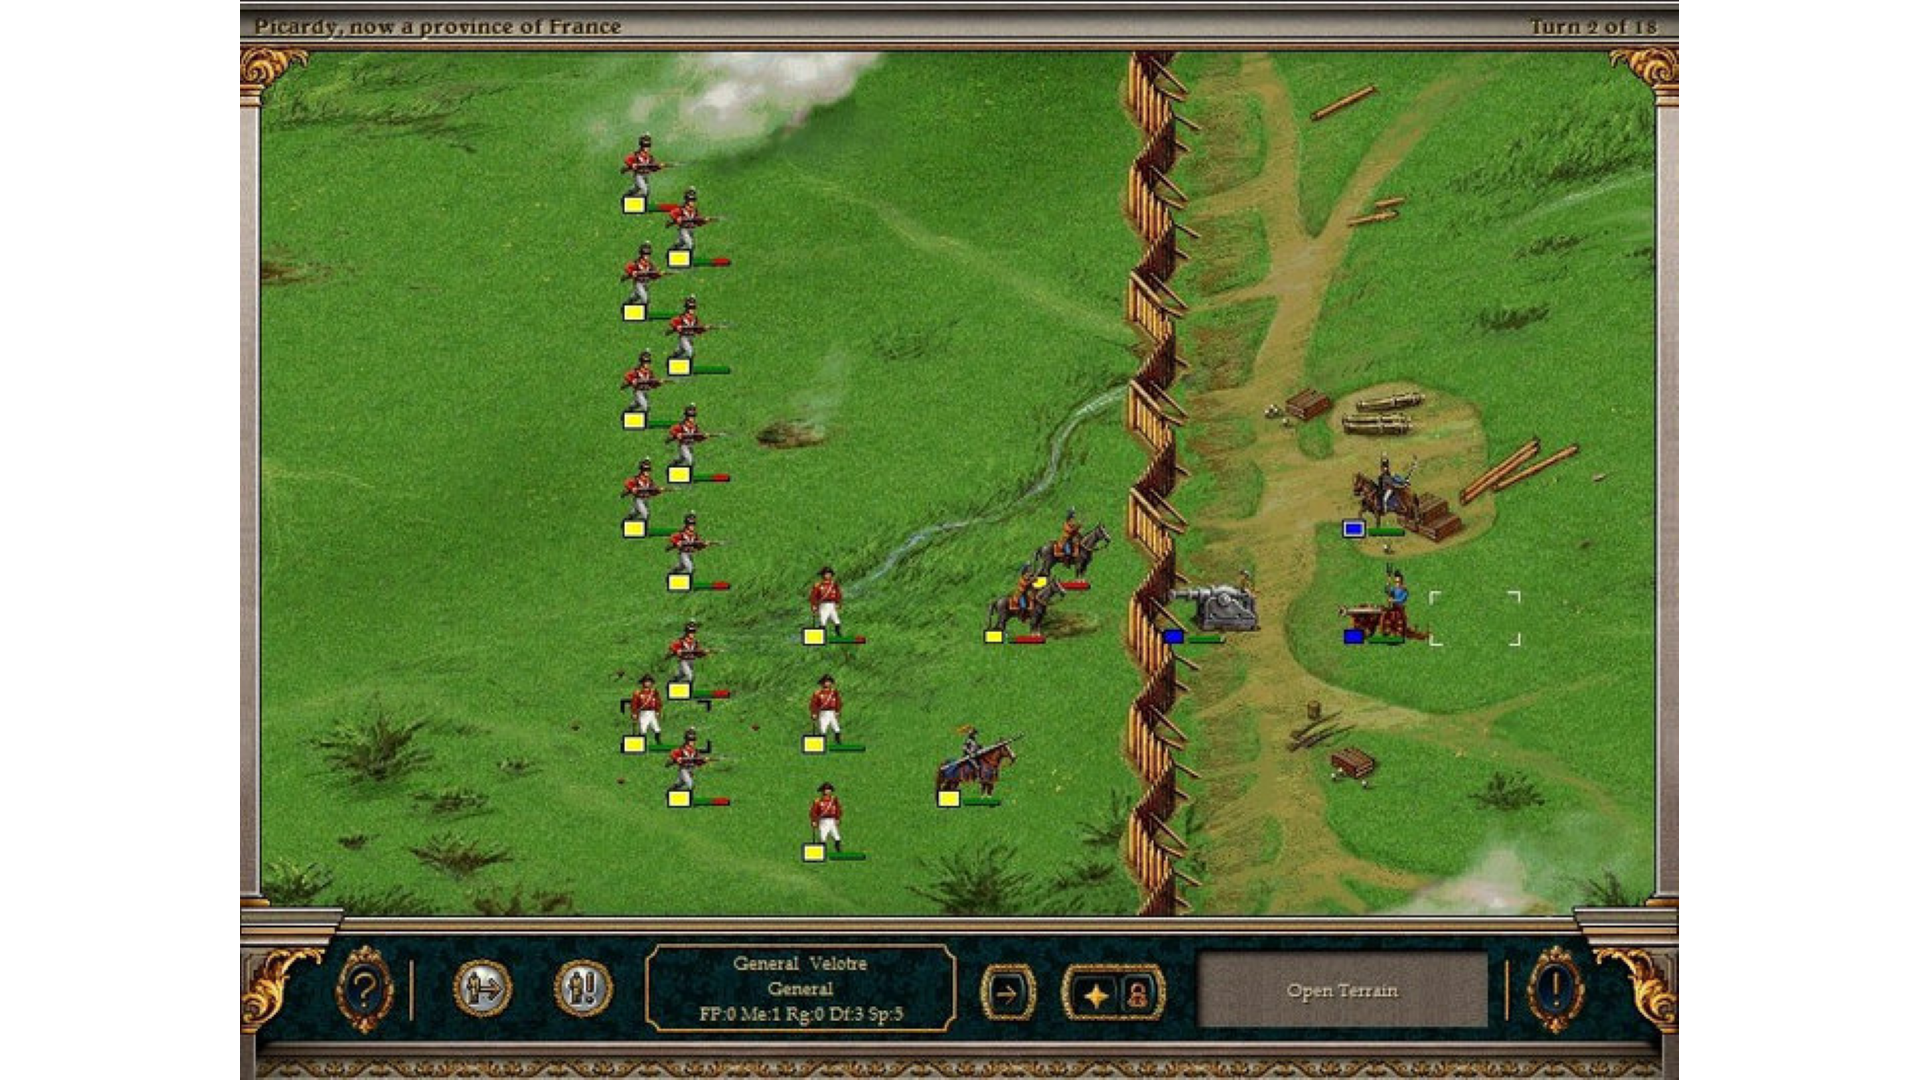 A screenshot of Imperialism 2's battle map.